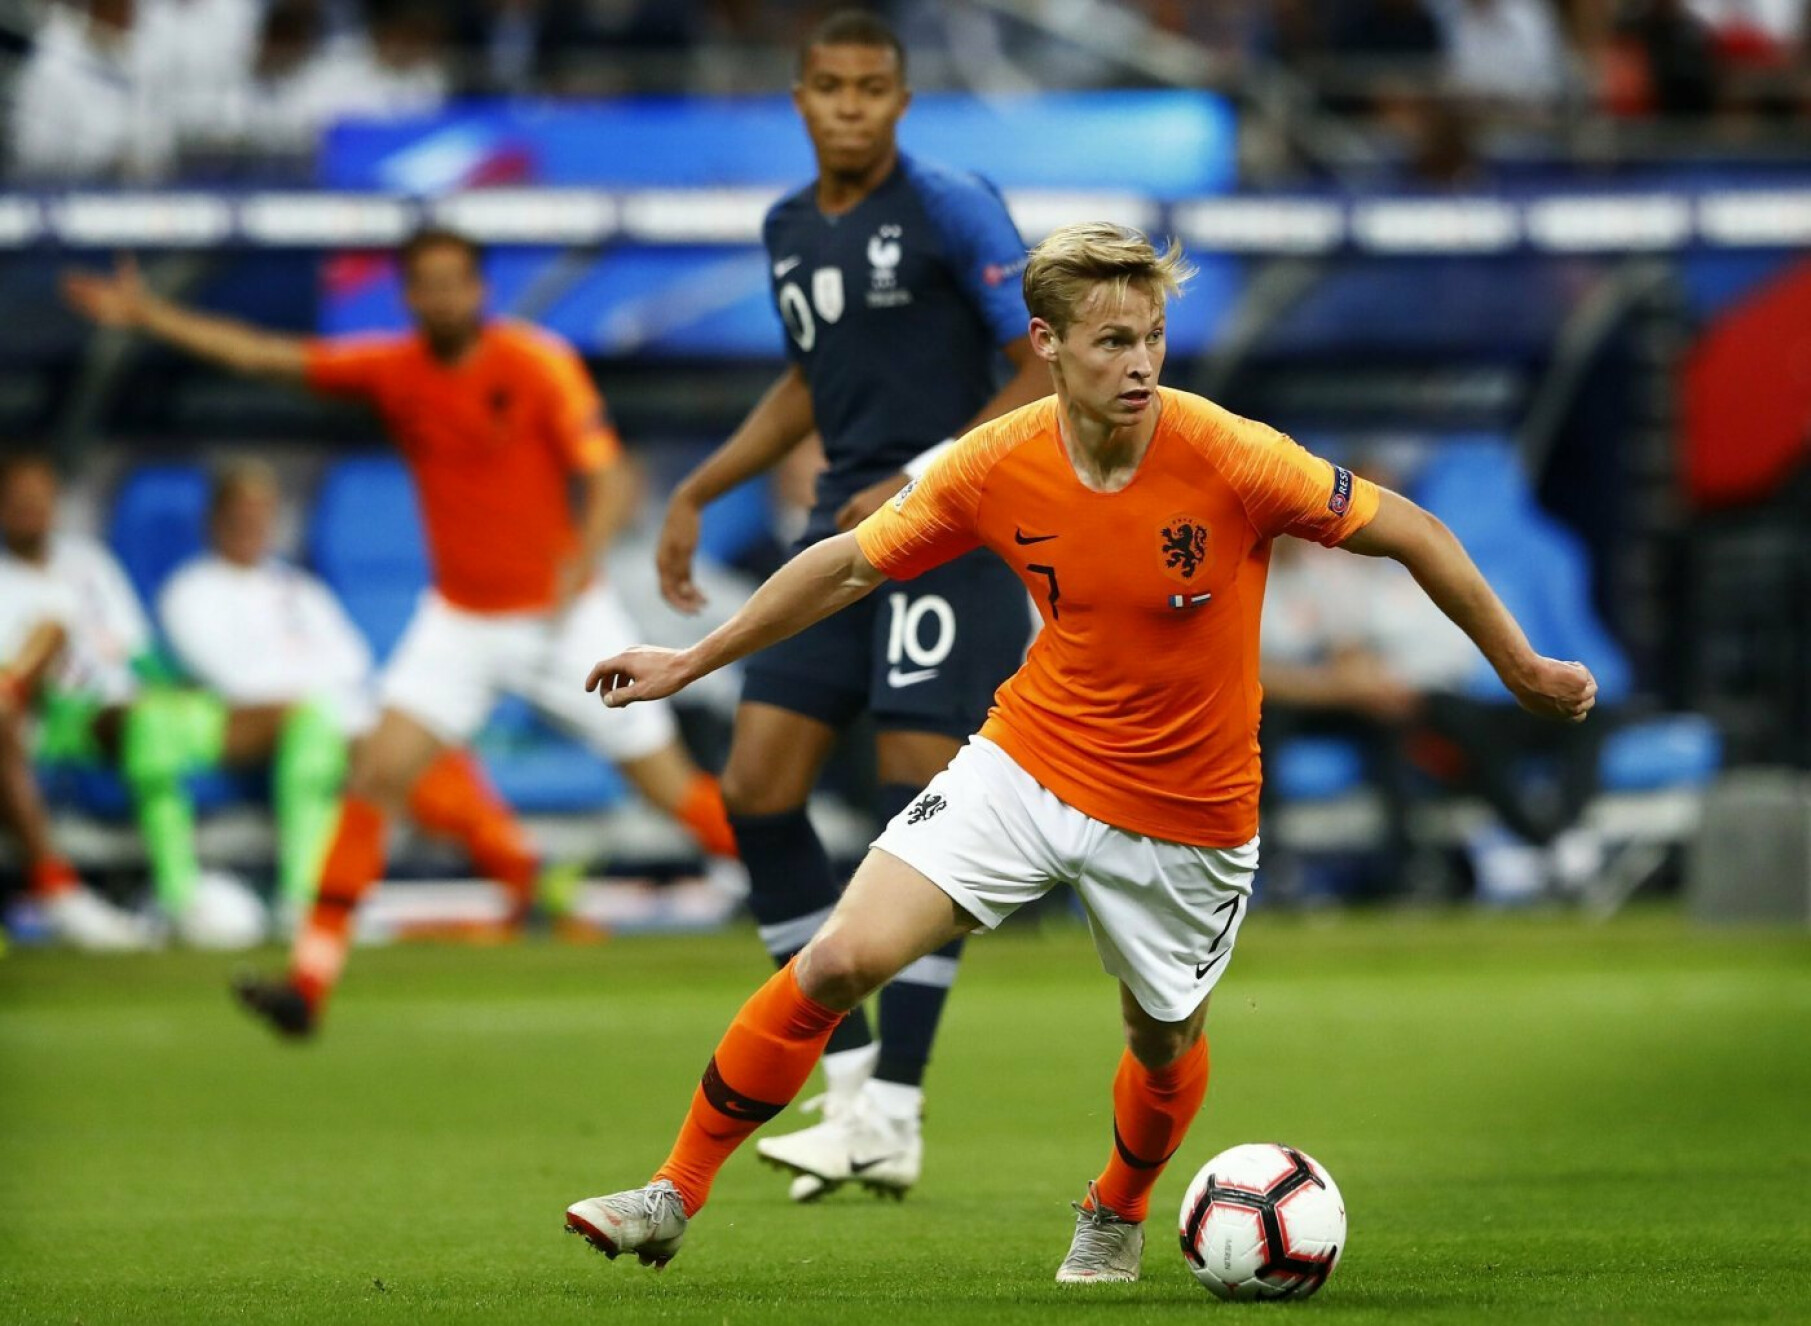 Why Frenkie de Jong will attract more suitors than Matthijs de ligt